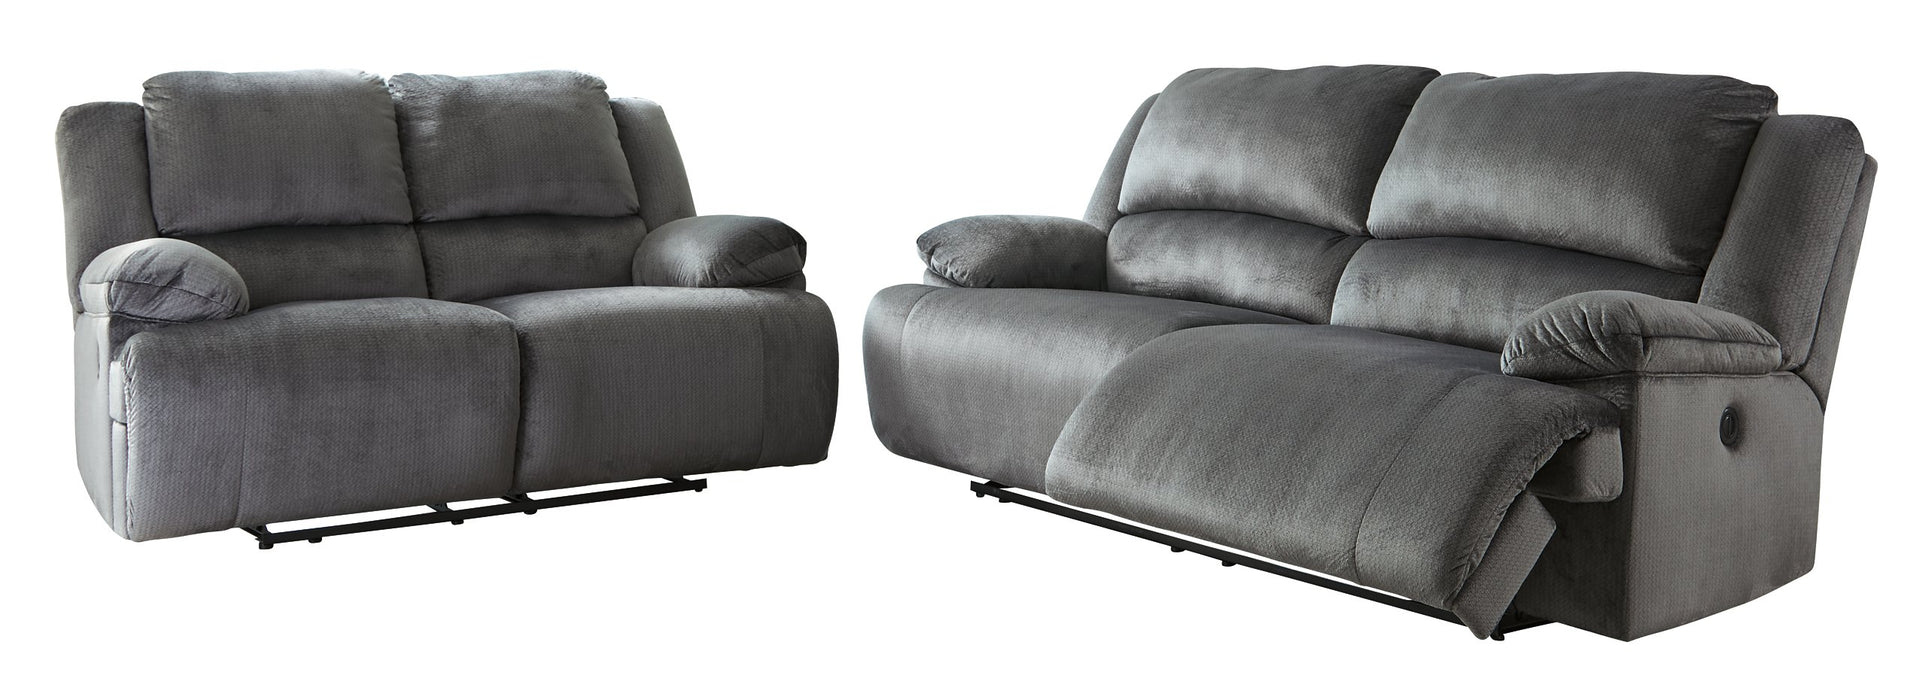 Clonmel Signature Design Contemporary Power Reclining 2-Piece Living Room Set